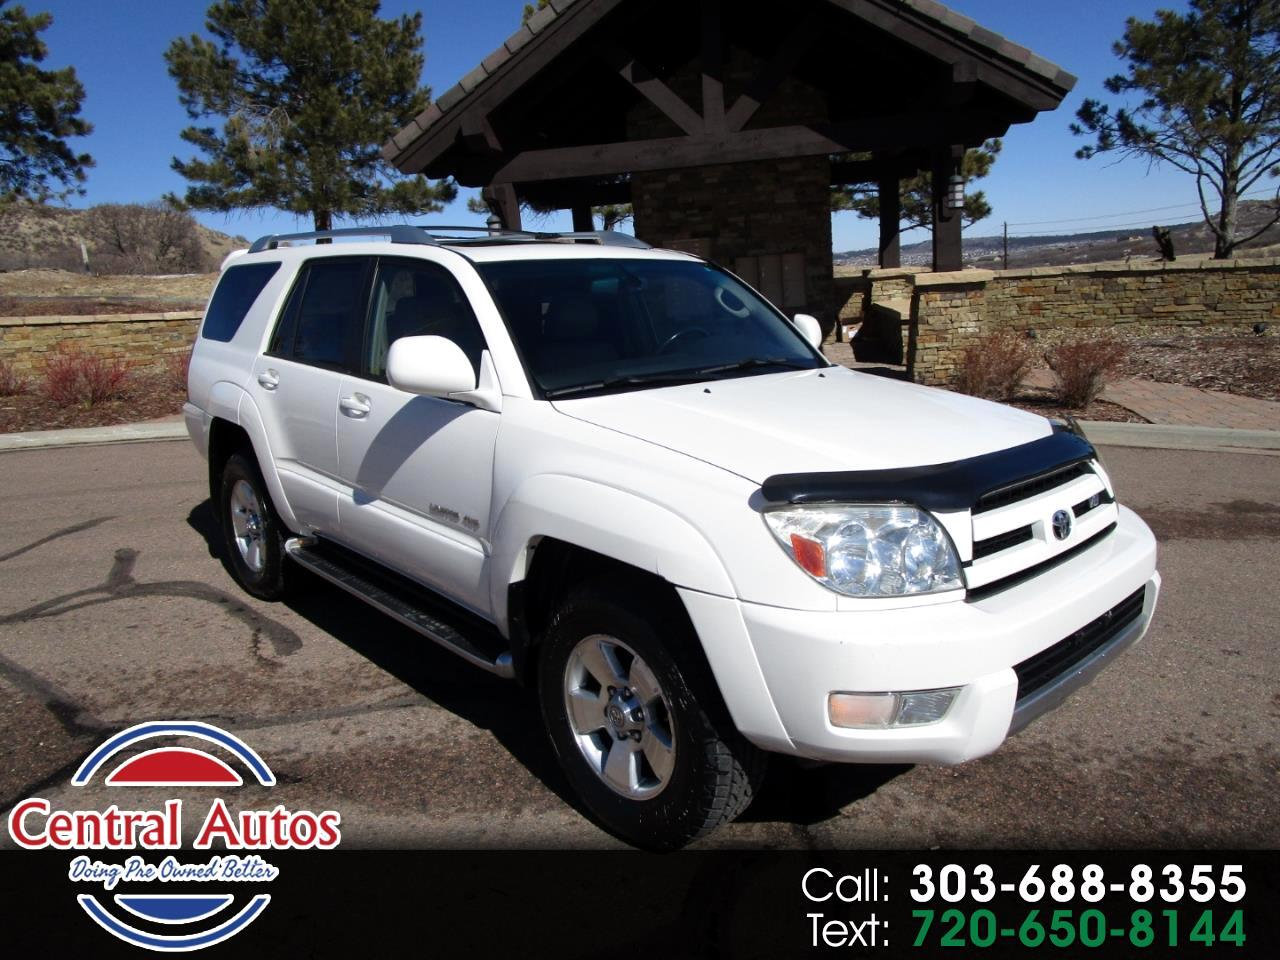 2004 Toyota 4Runner 4dr Limited V8 Auto 4WD (Natl)